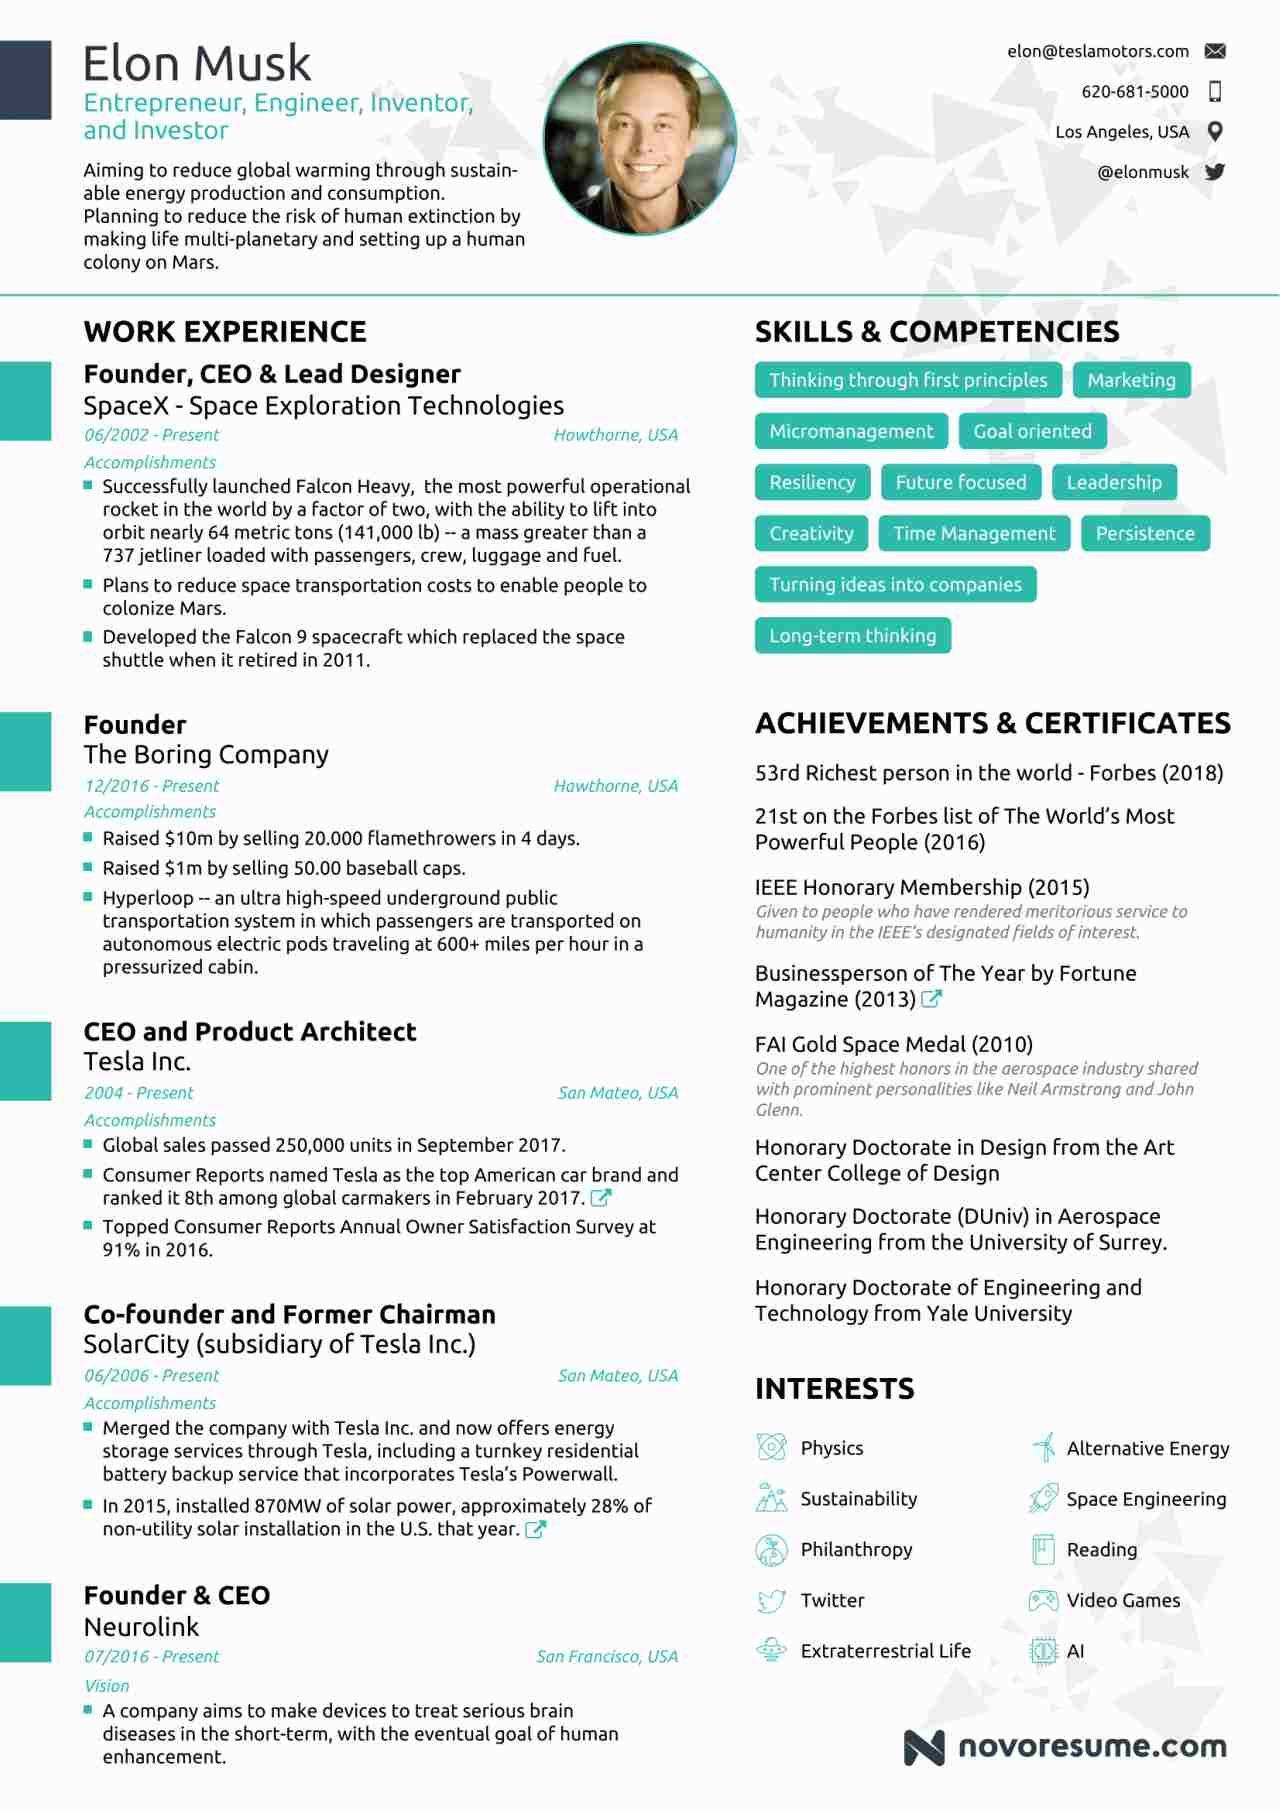 Elon Musk Has a One Page Resume That we All Must Take